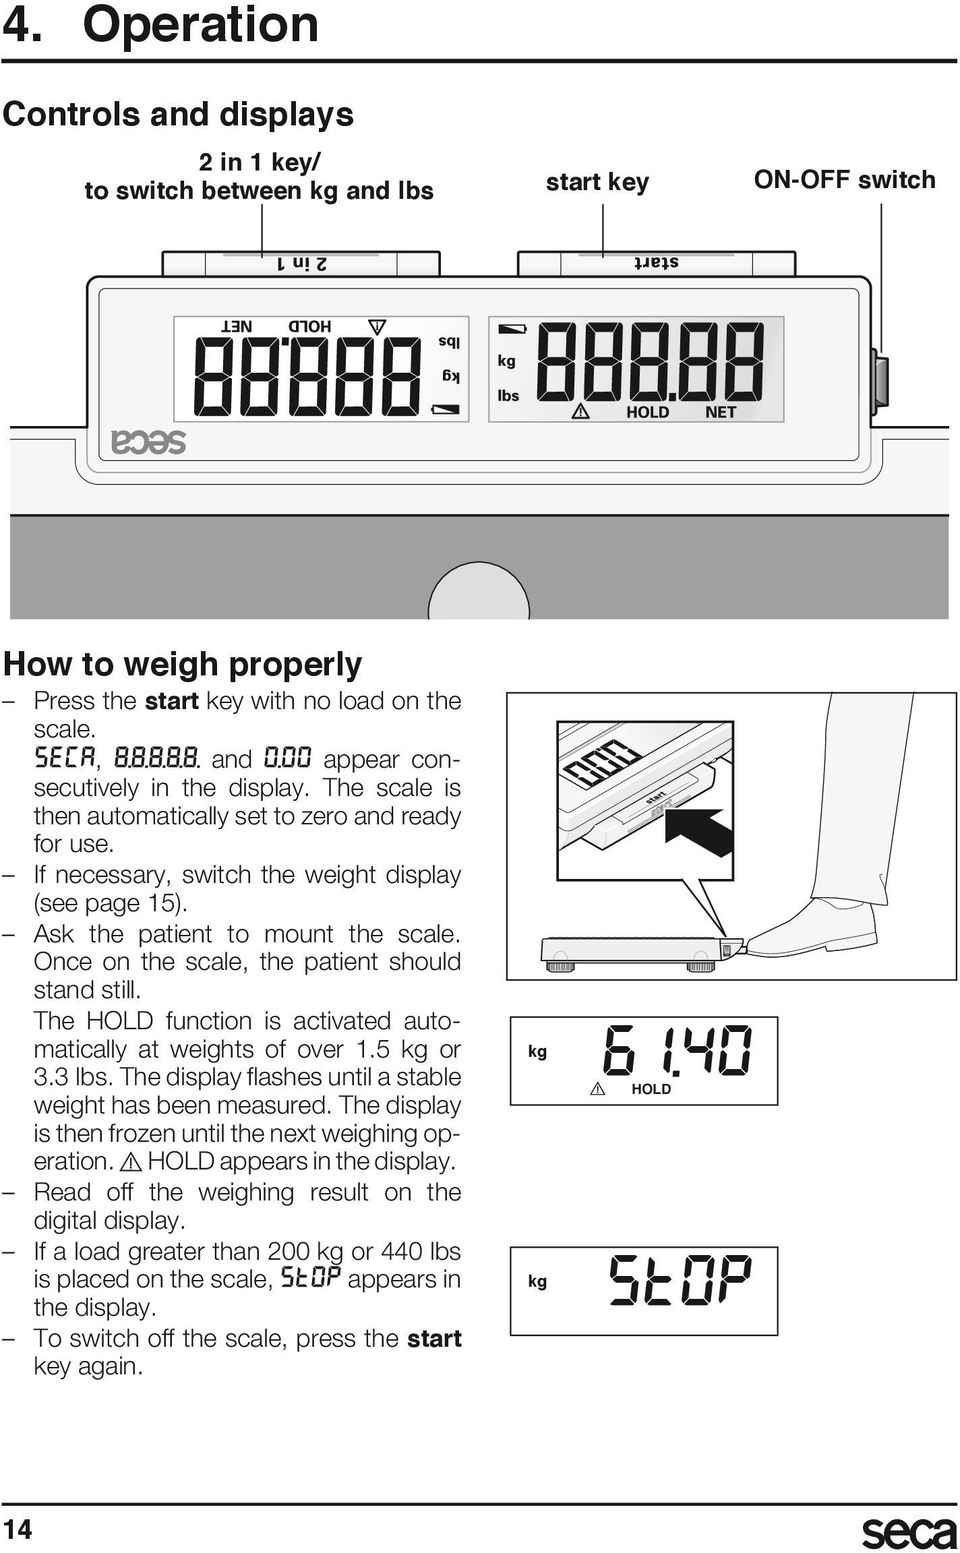 Once on the scale, the patient should stand still. The HOLD function is activated automatically at weights of over 1.5 kg or 3.3 lbs. The display flashes until a stable weight has been measured.